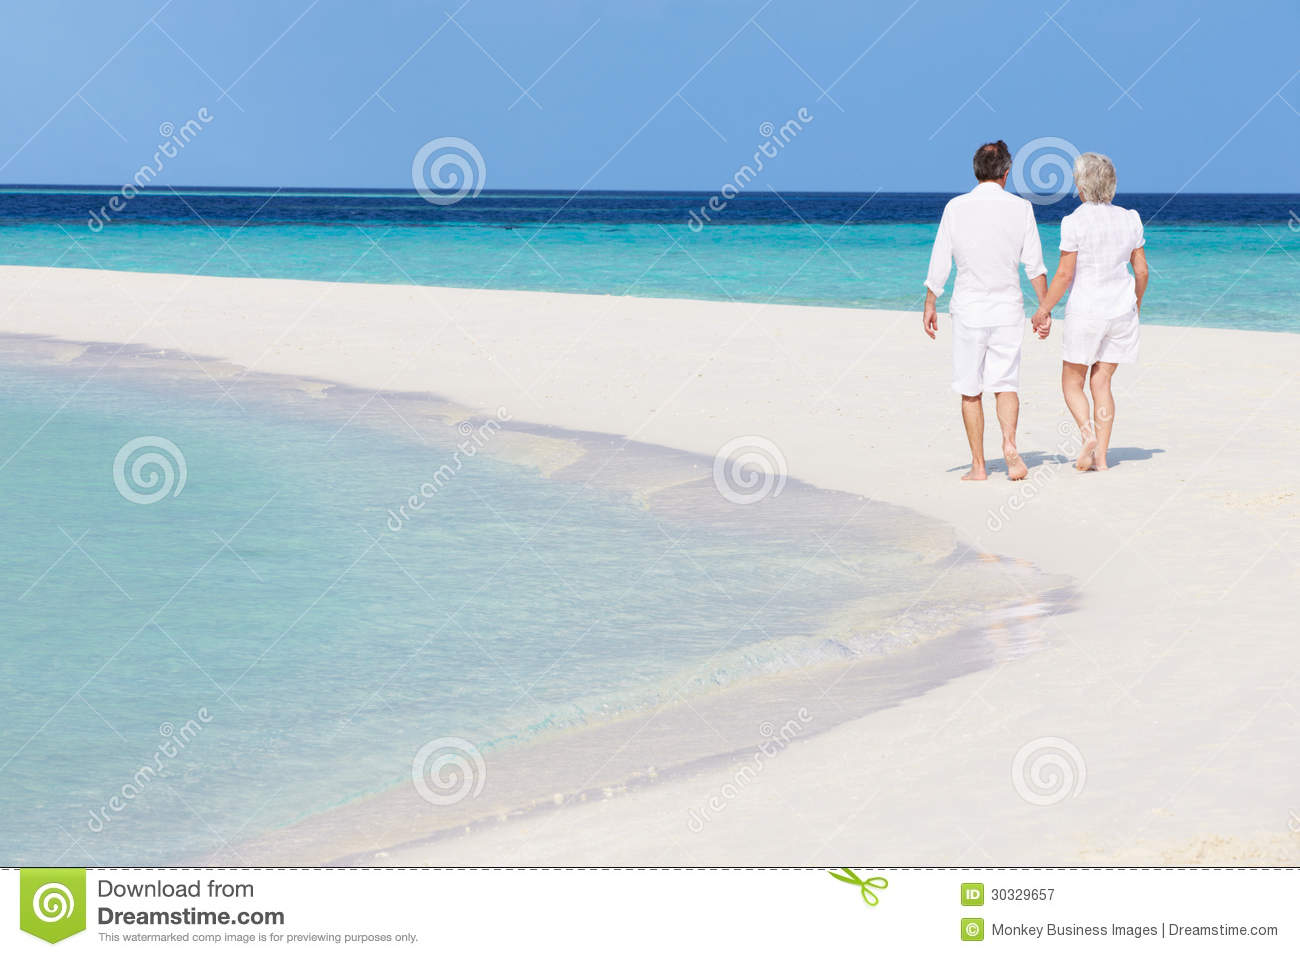 Romantic Pictures Of Tropical Beaches: Senior Romantic Couple Walking On Beautiful Tropical Beach